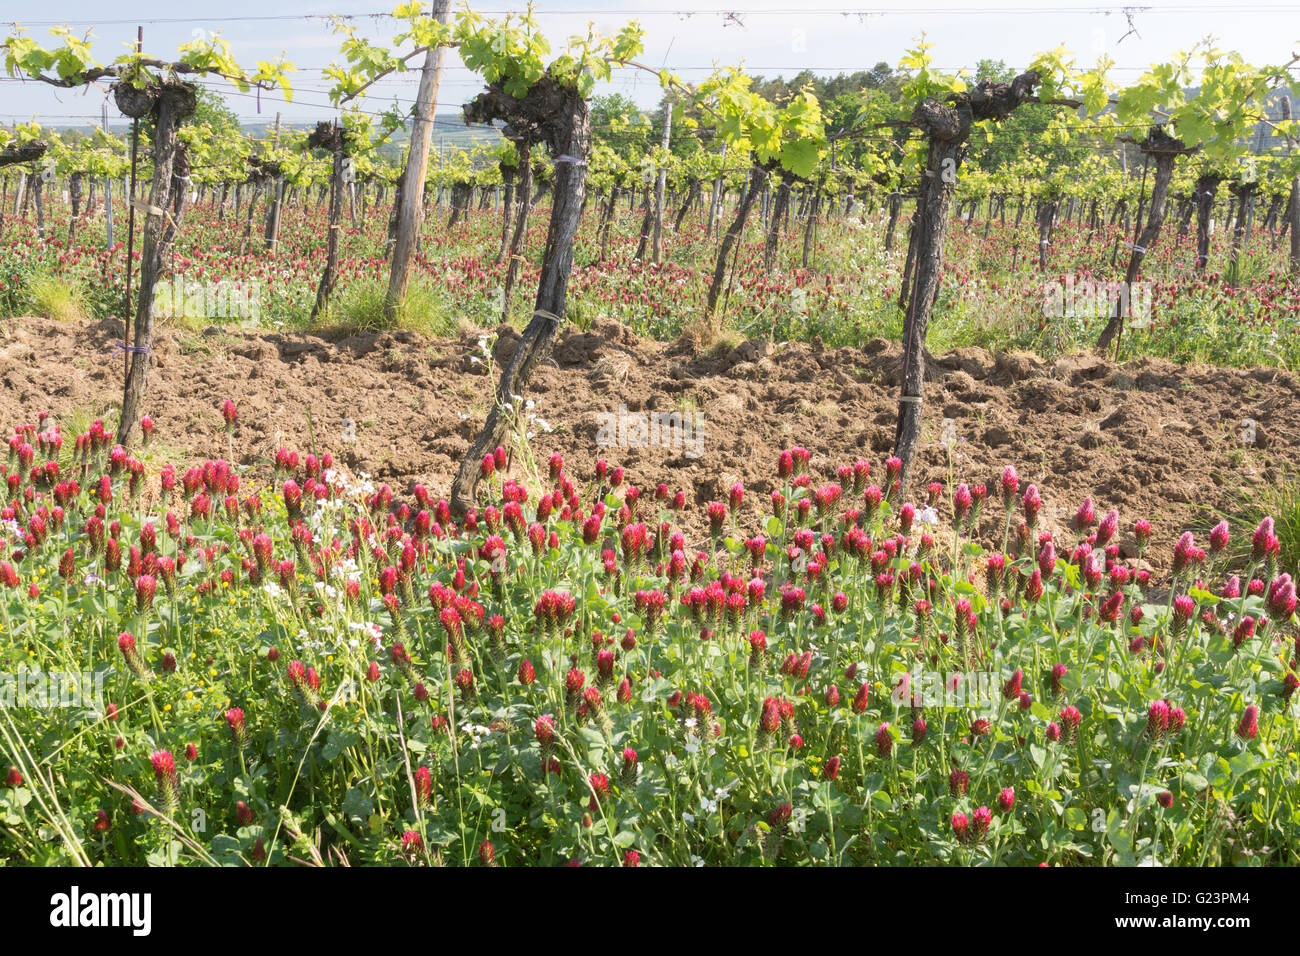 Crimson clover growing between grapevines in Austria for nitrogen fixation - Stock Image